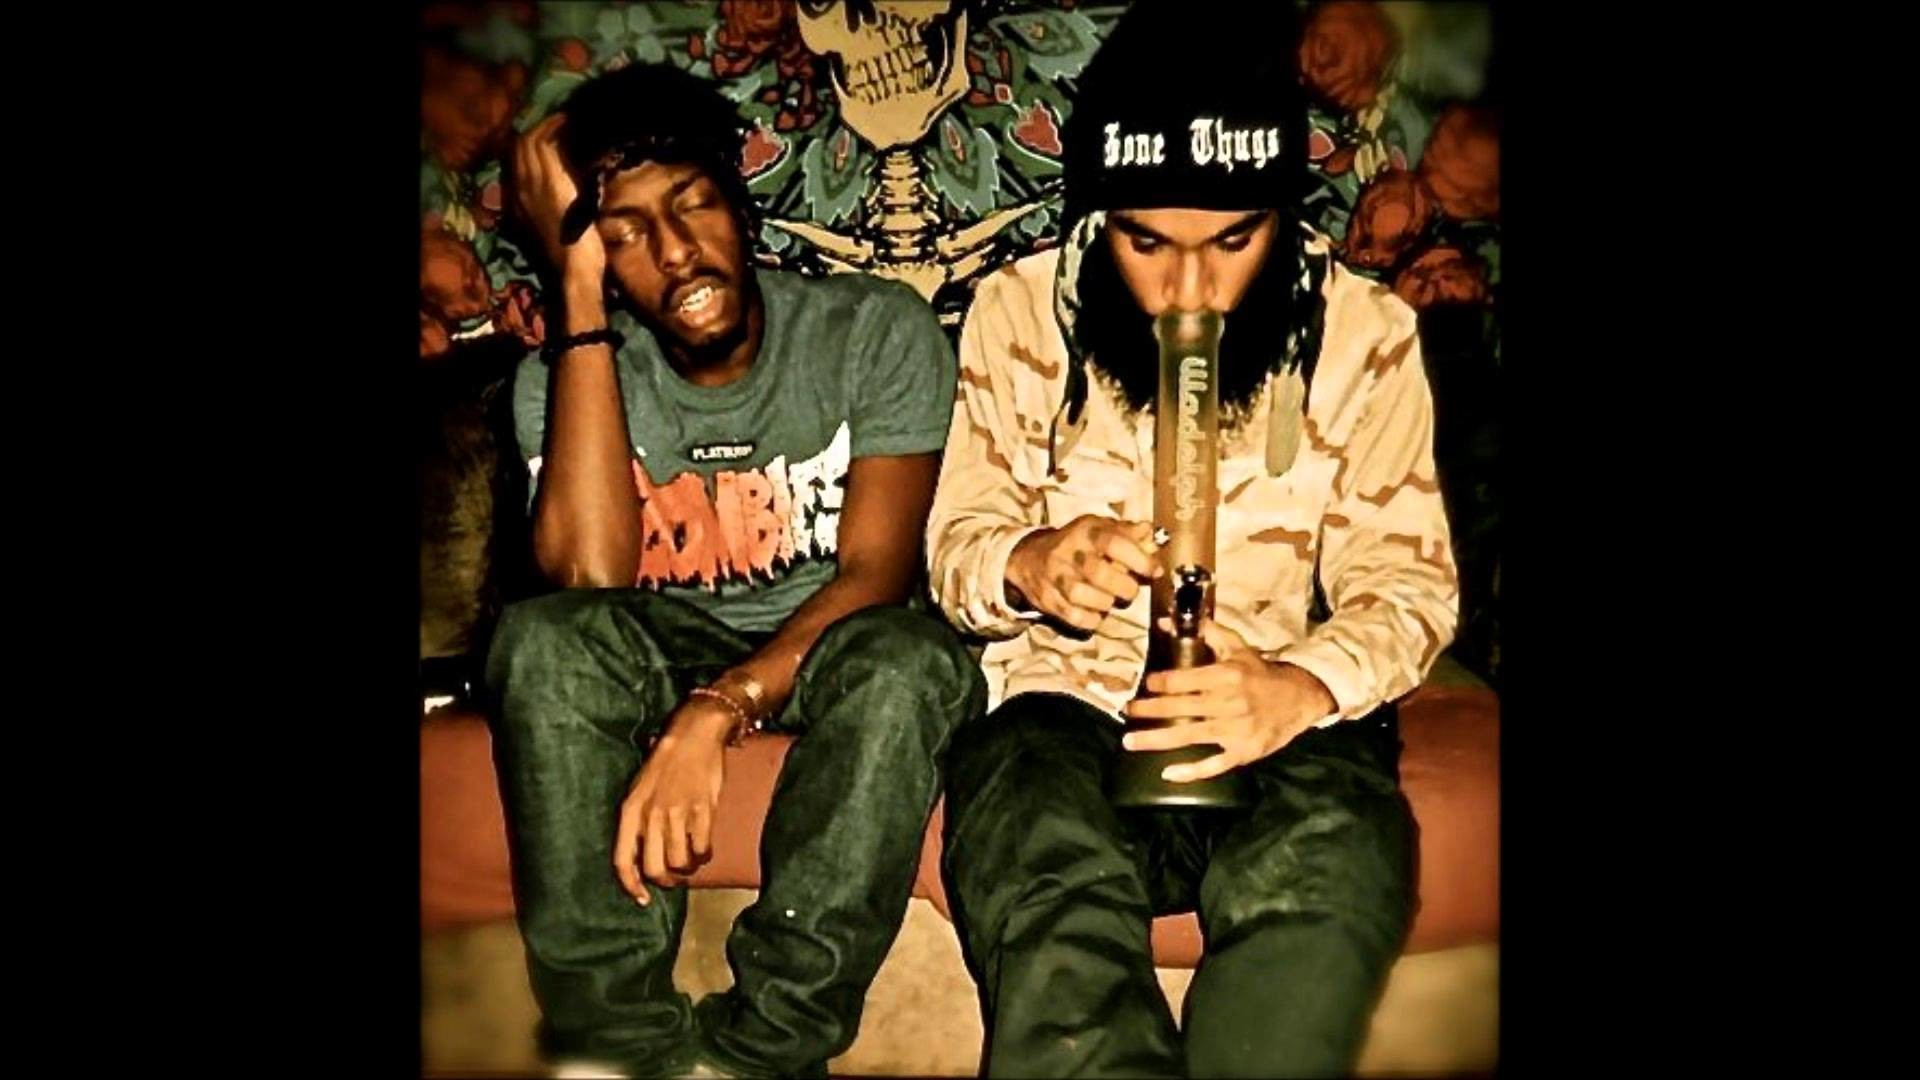 … Awesome Maxresdefault Flatbush Zombies Wallpaper And Flatbush Zombies  MRAZ BA$$ BOOSTED YouTube Hd Wallpapers